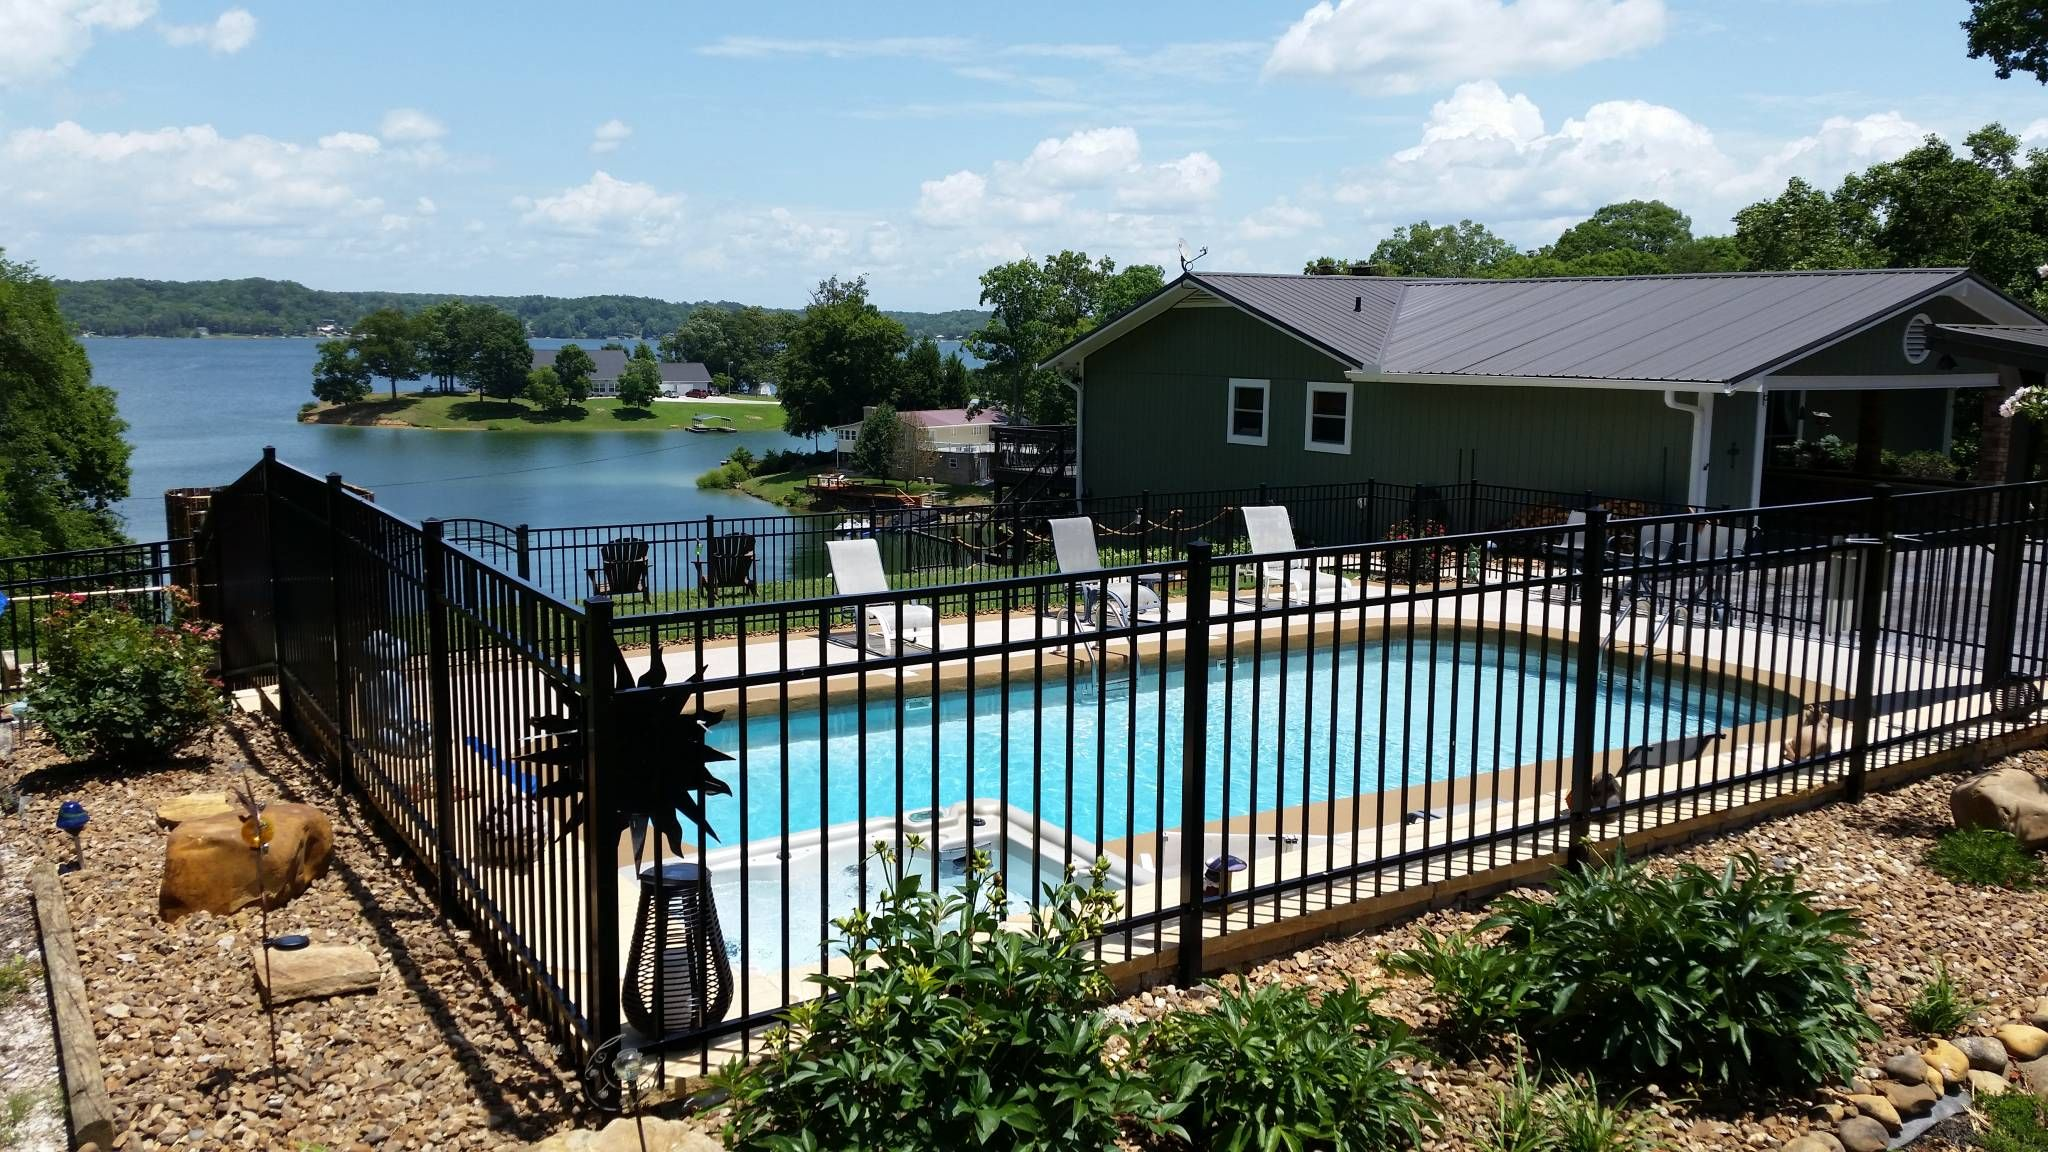 on own carolina cabins to with hot mountains wisconsin tubs a rent north interior louisiana lake places in rental